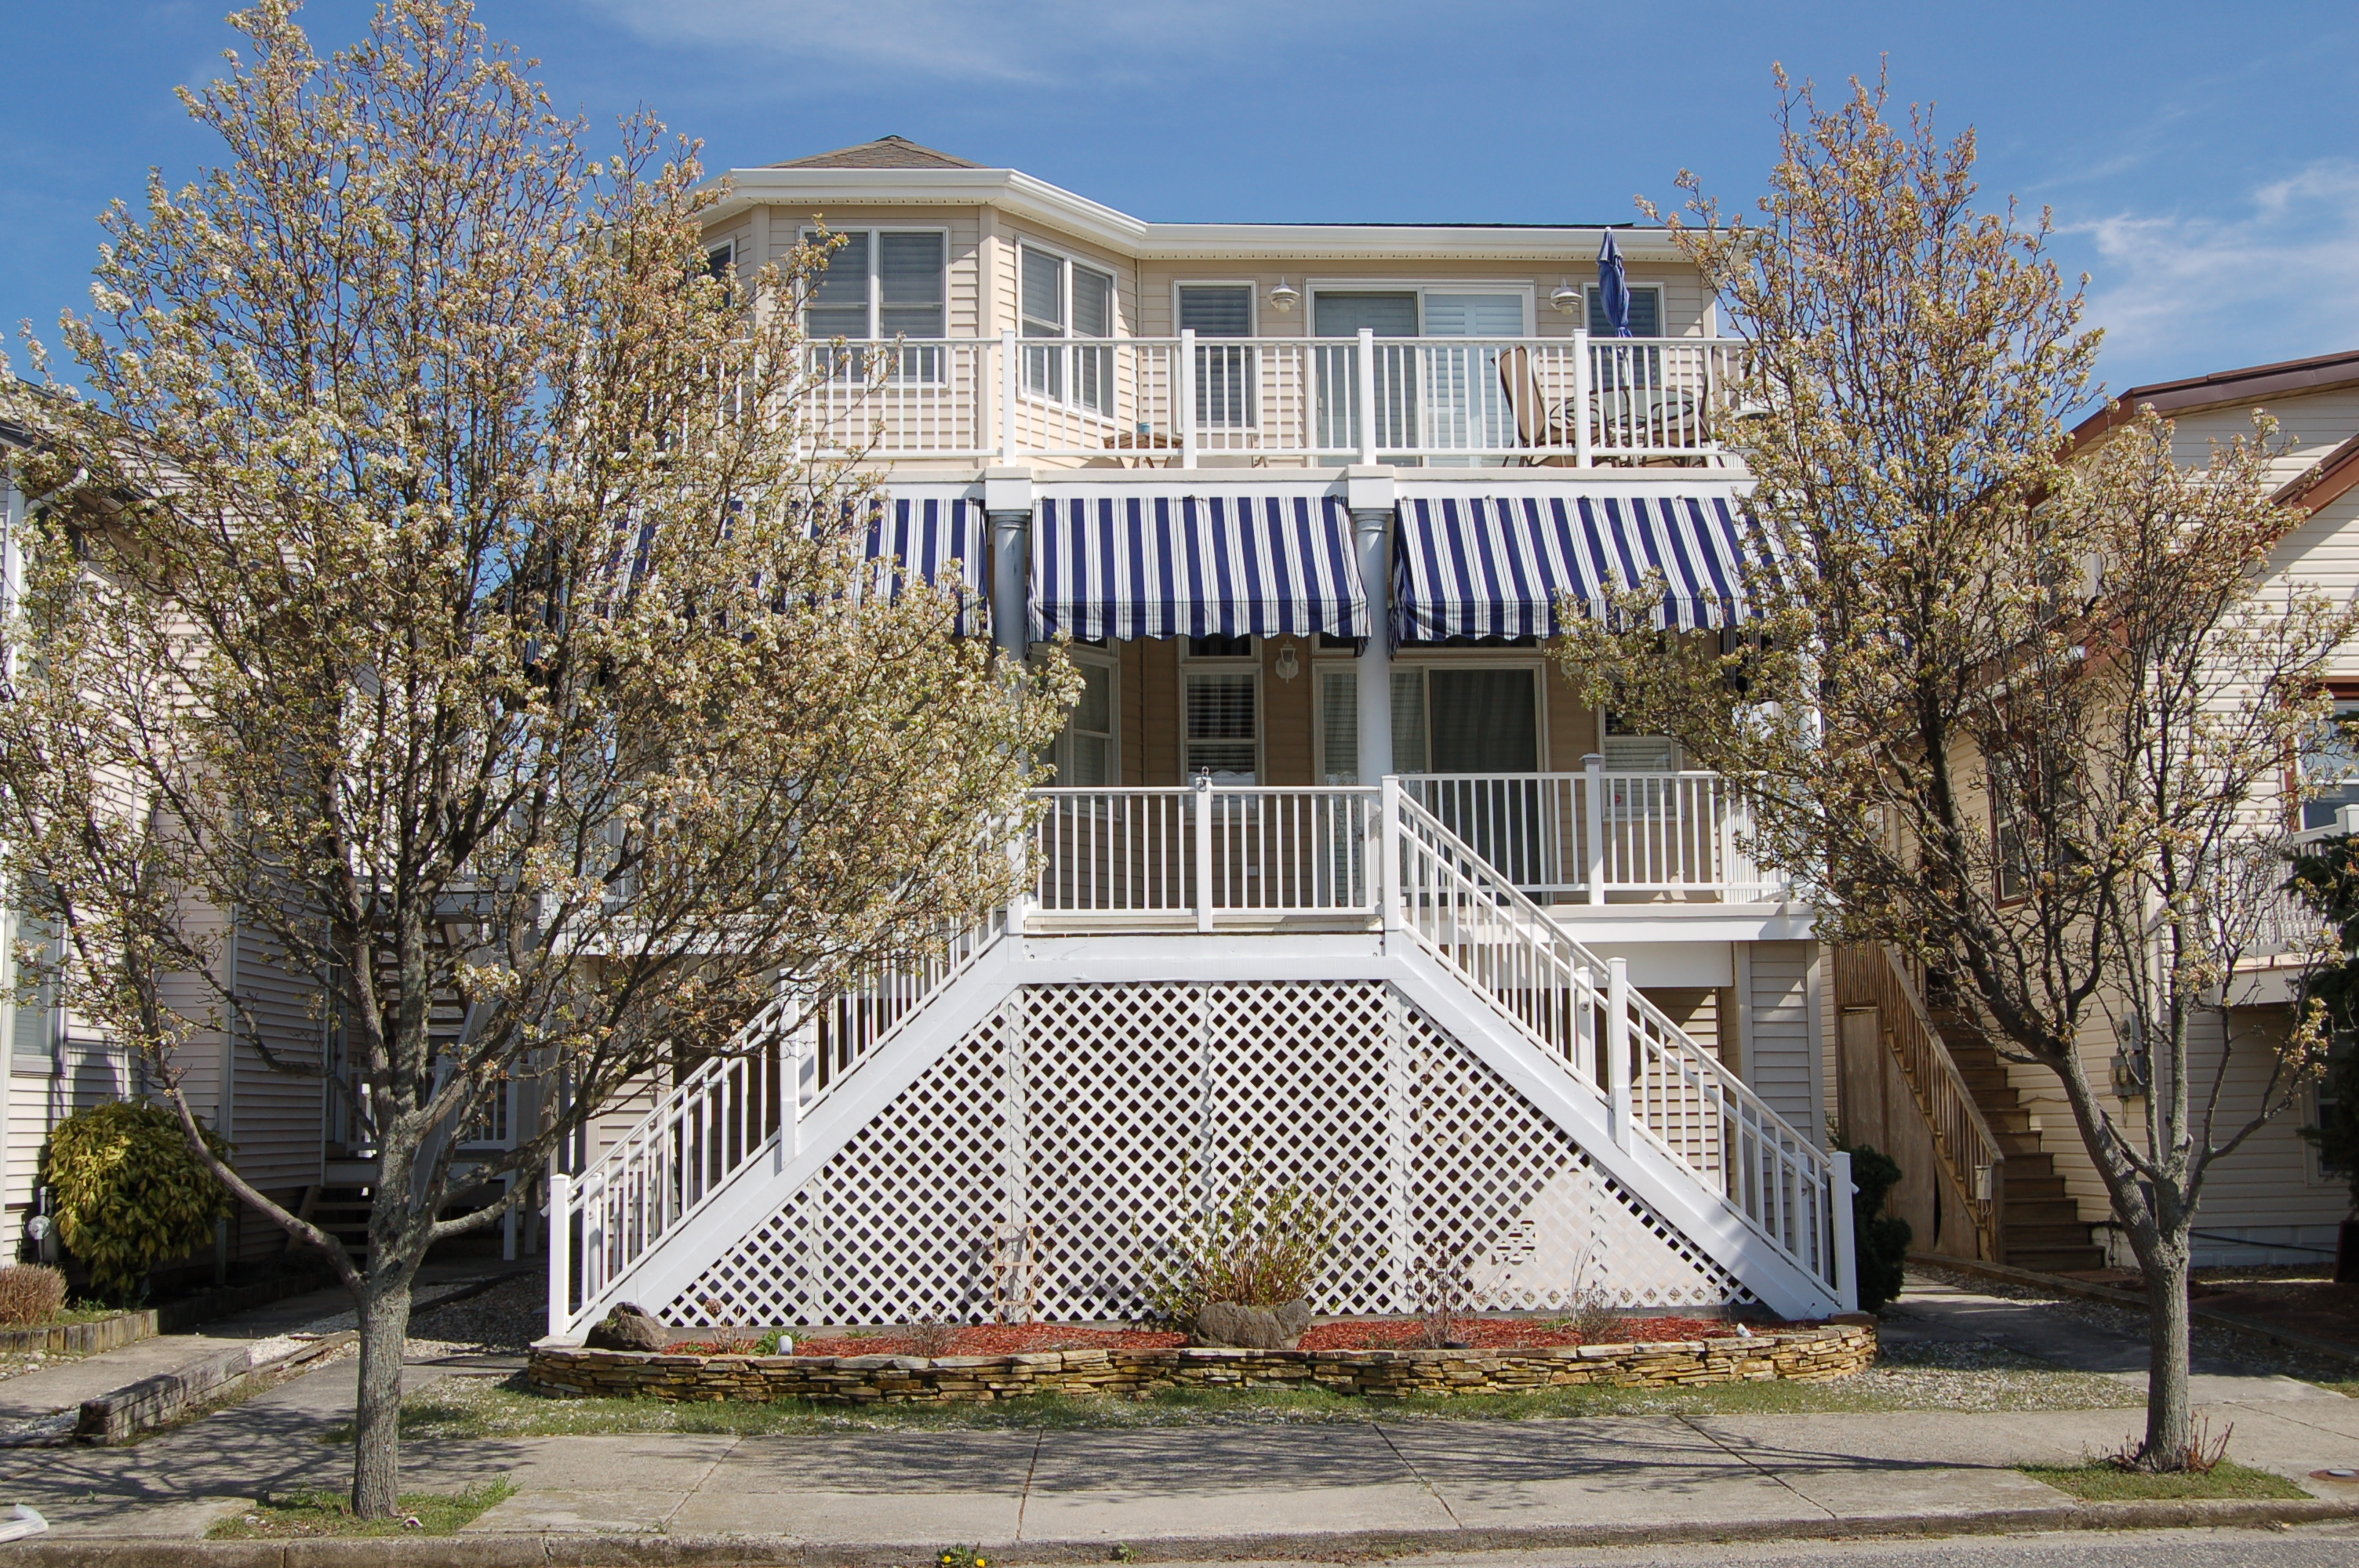 Moradia para Venda às Beach Block Condo 3023 Central Avenue Ocean City, Nova Jersey 08226 Estados Unidos